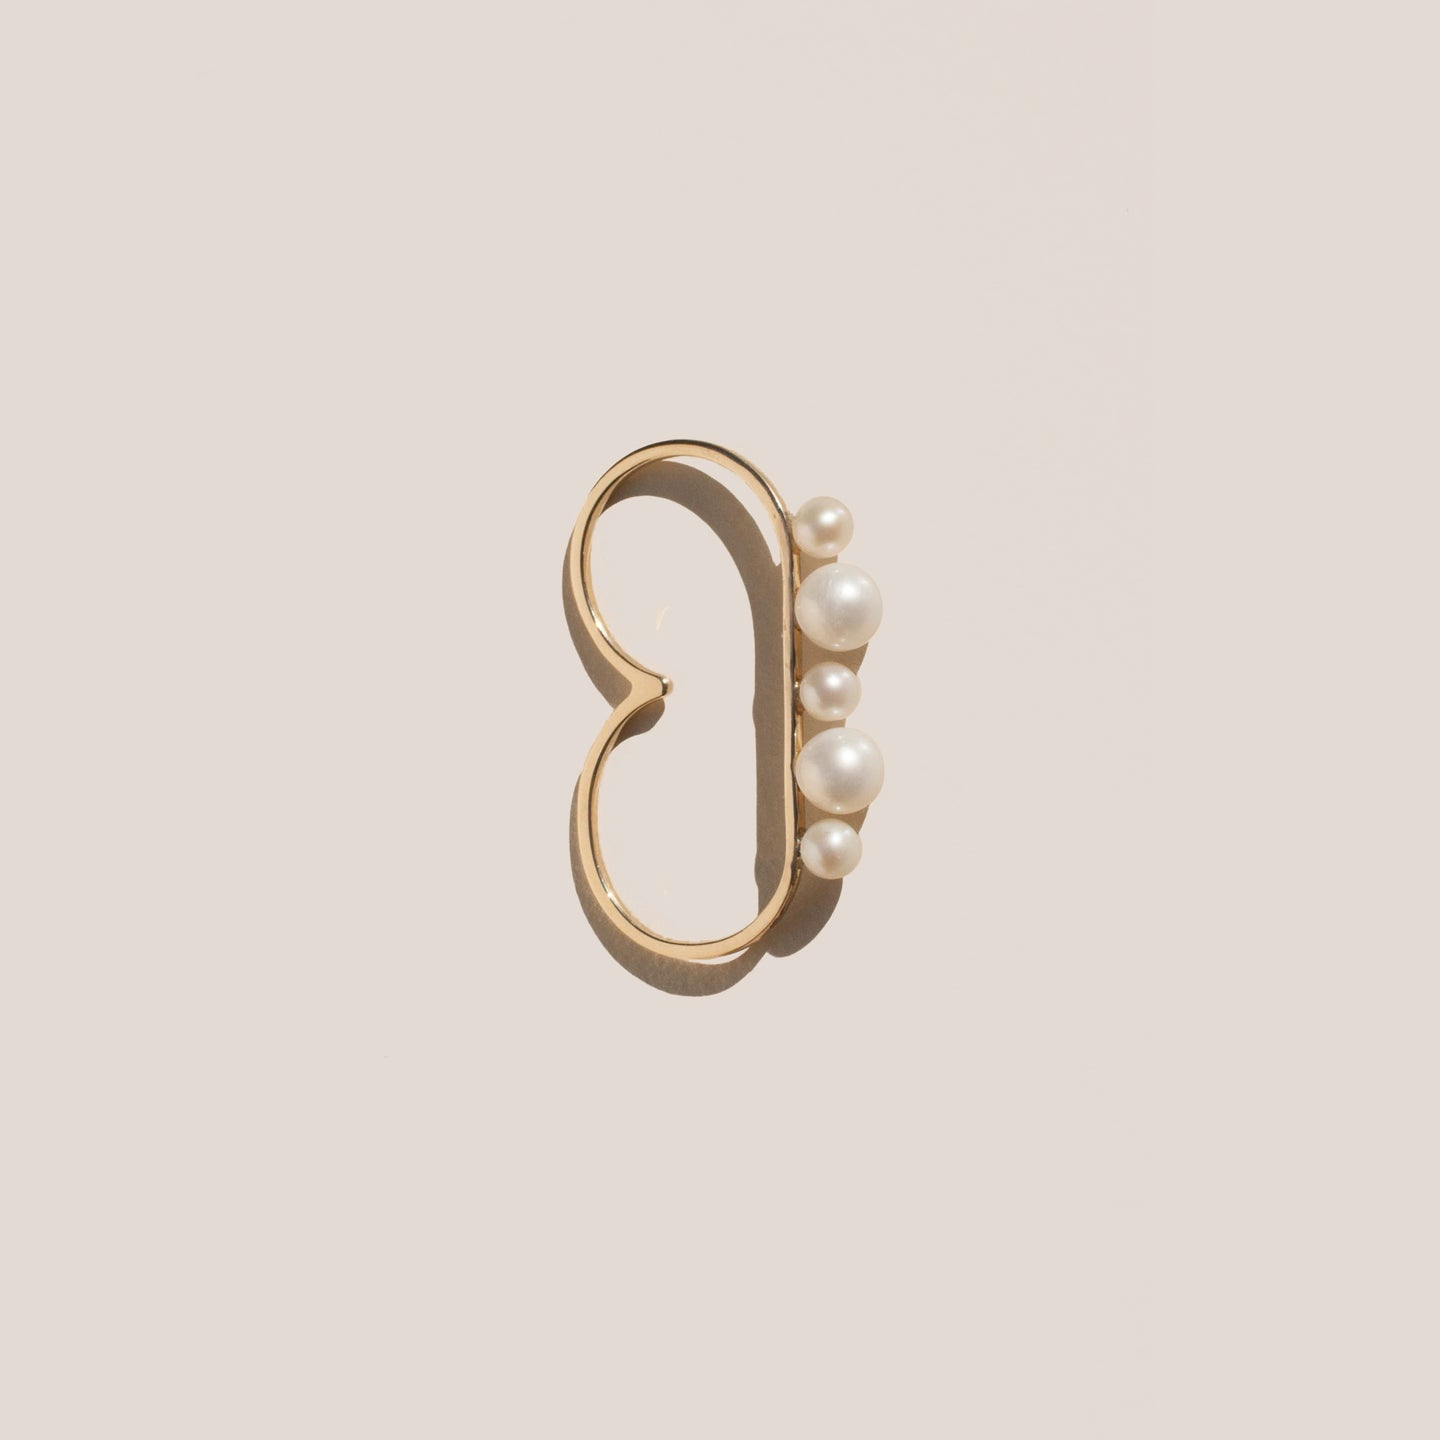 Gabriela Artigas - Cosmos Double Finger Ring, available at LCD.